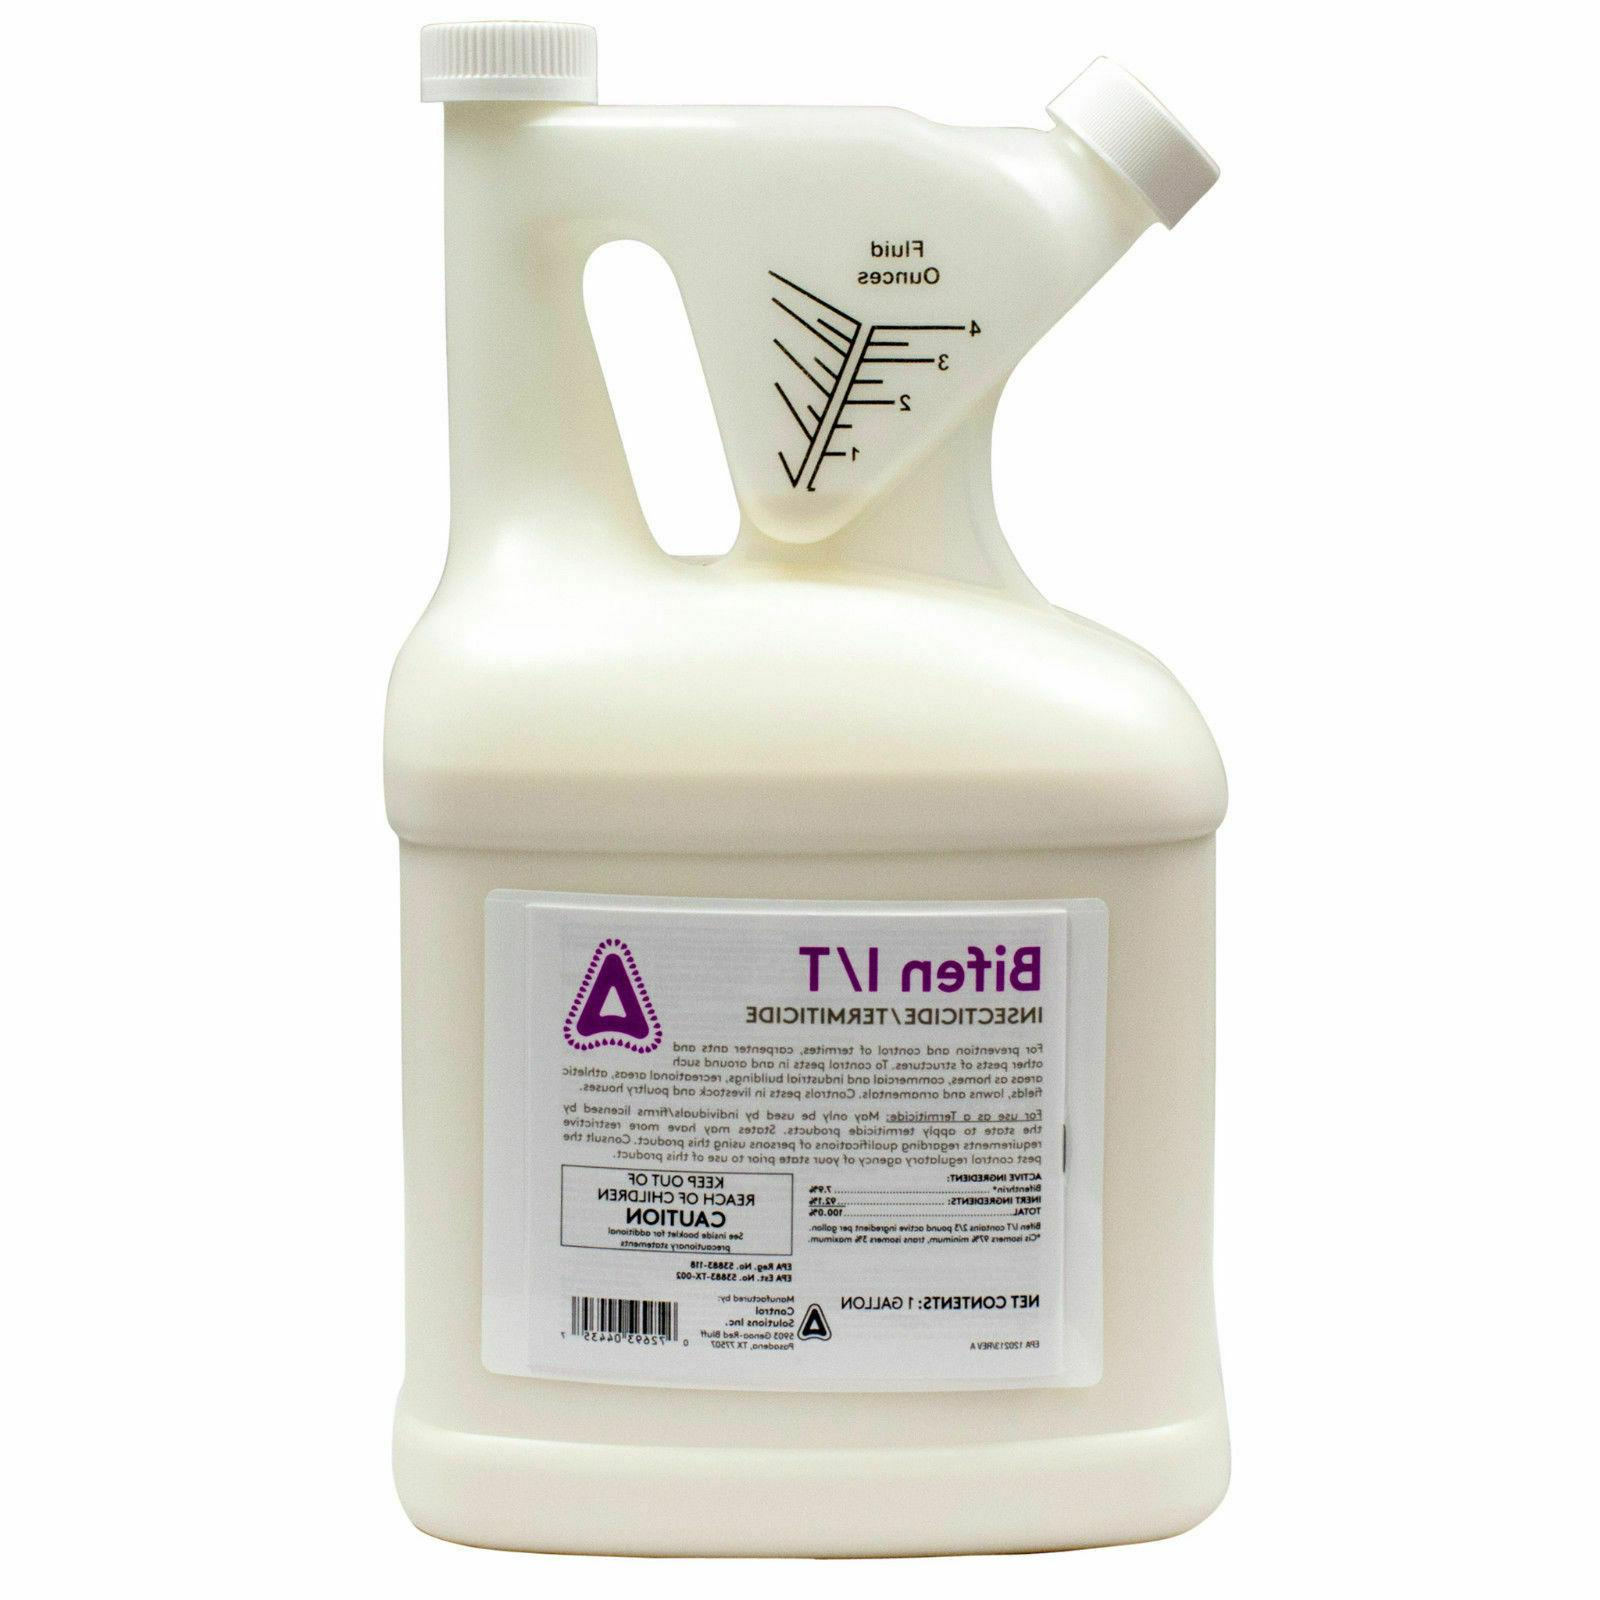 bifen it insecticide 1 gallon 128 oz